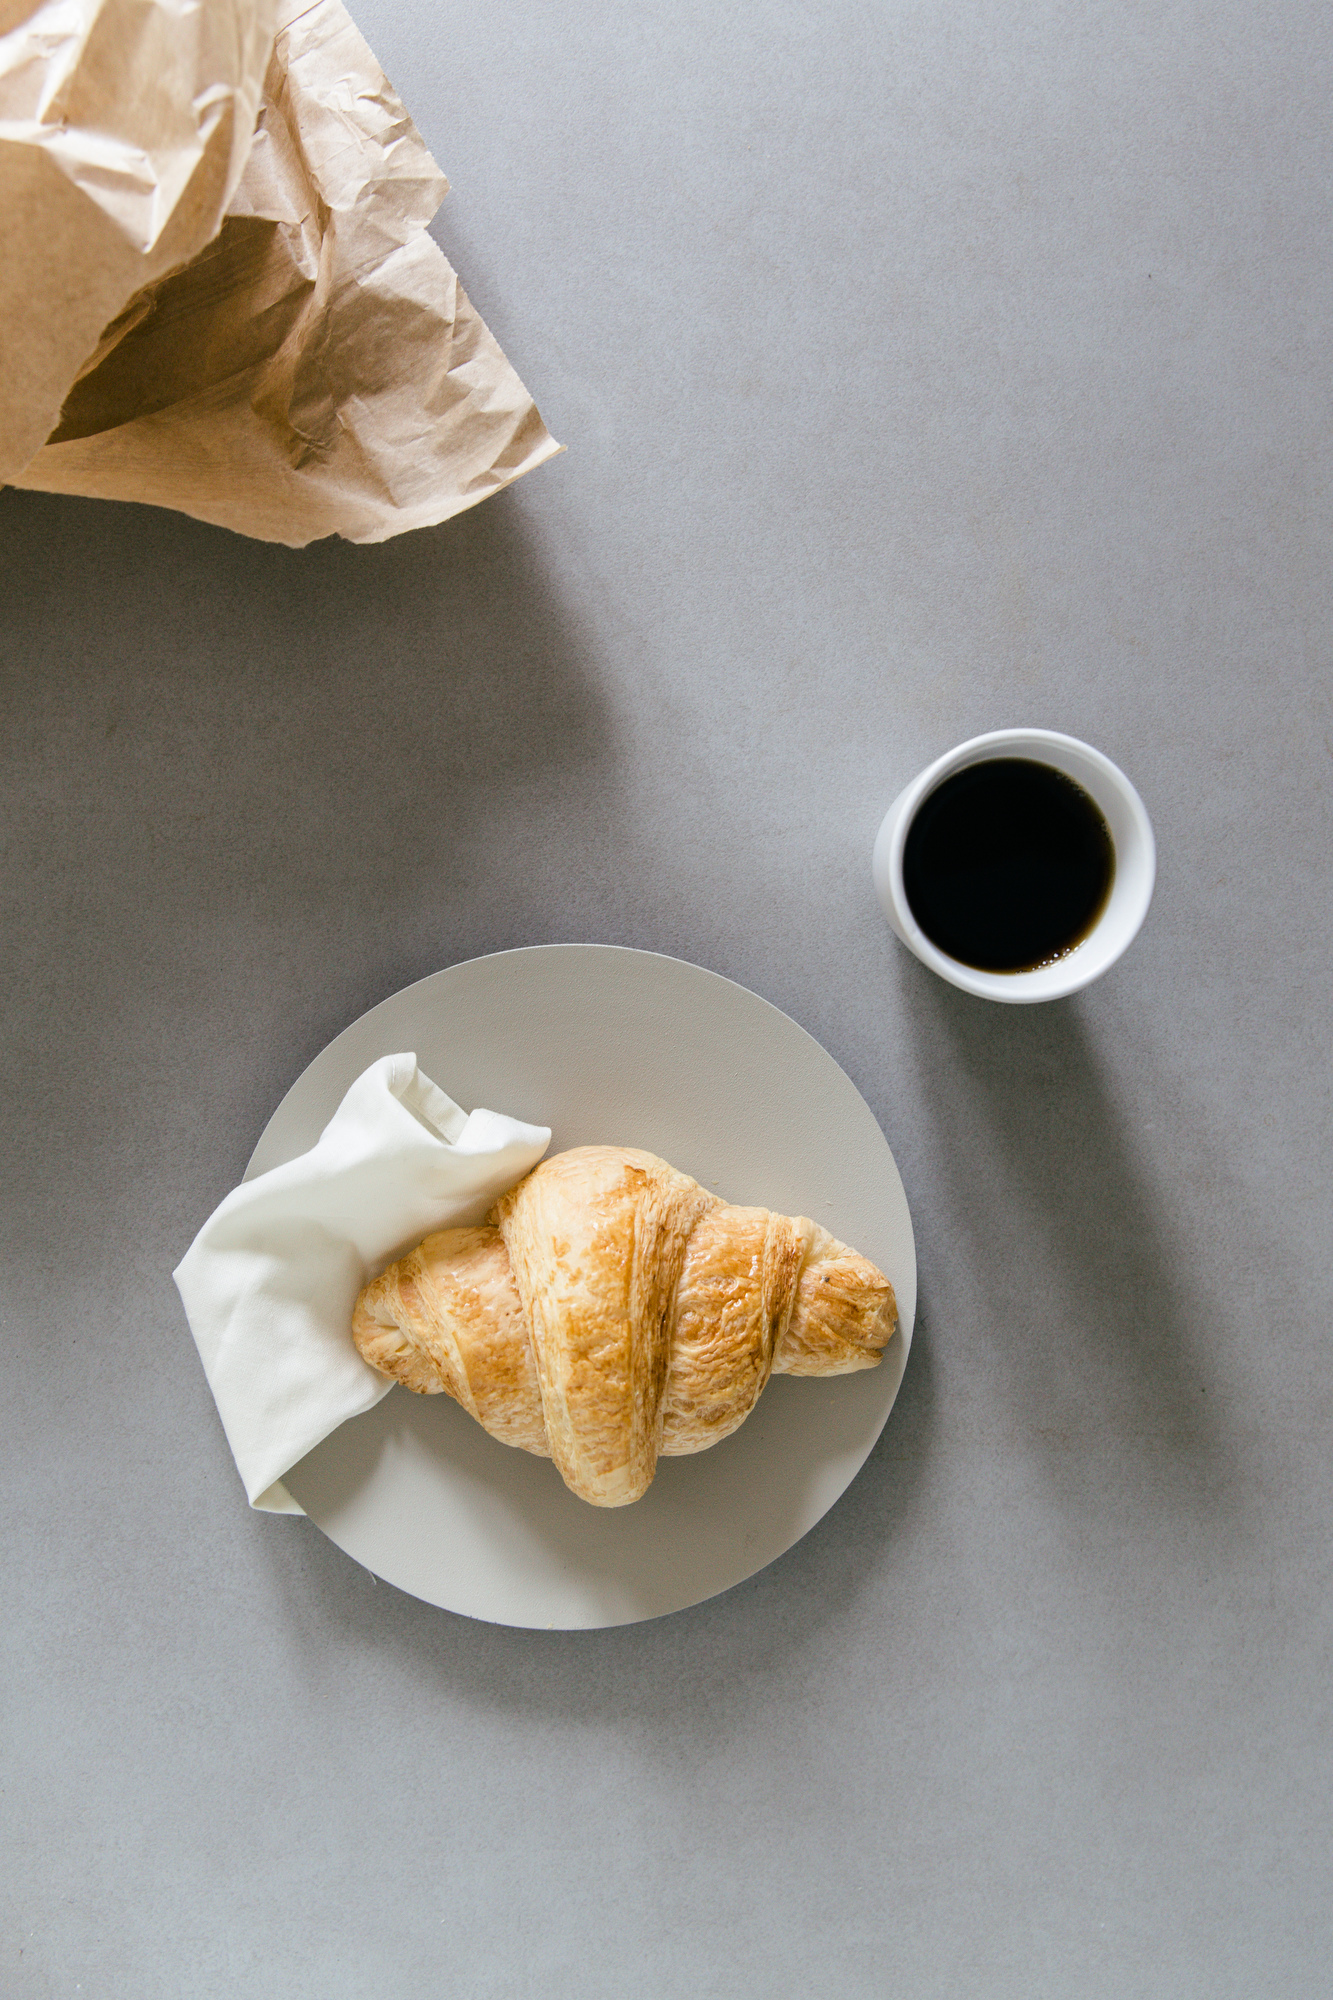 Croissant & coffee breakfast | photography & styling by Joske Simmelink